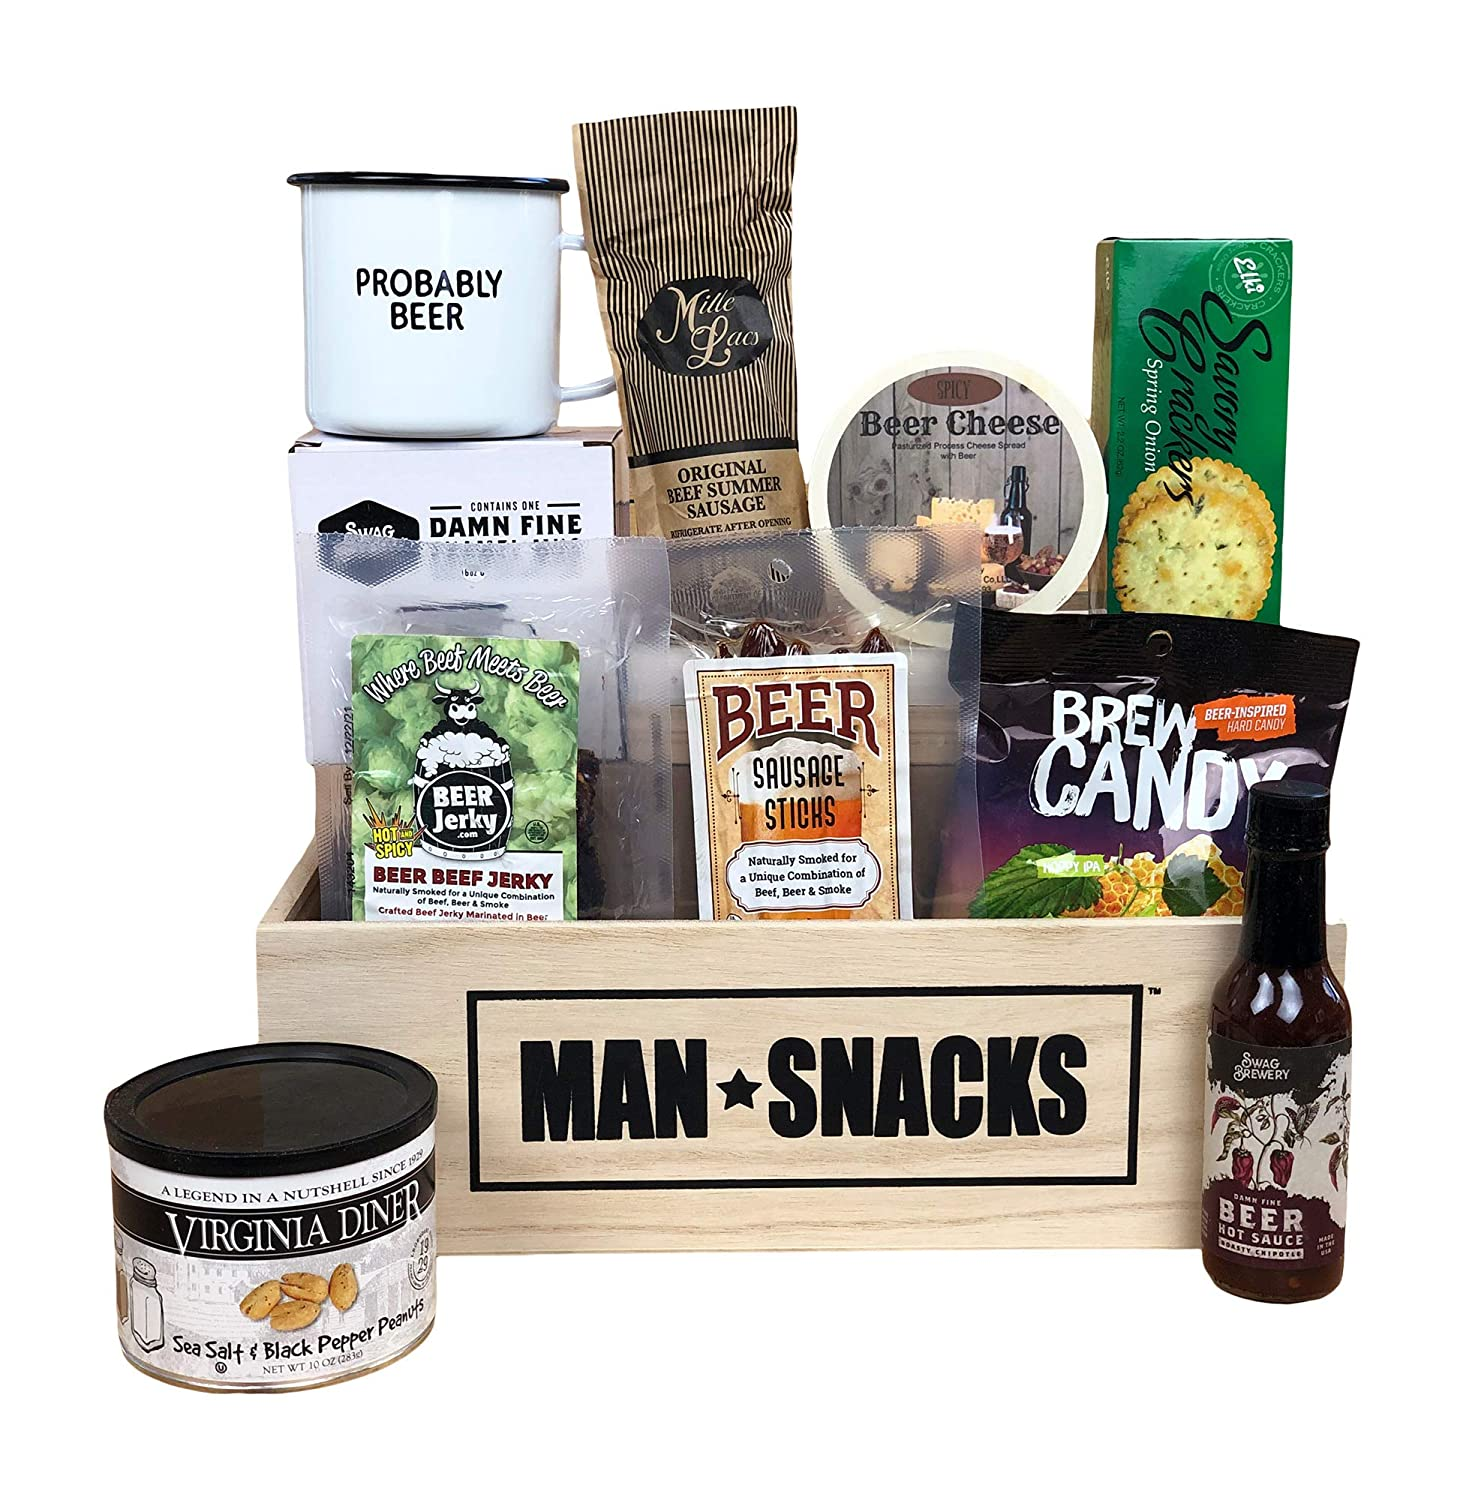 ManSnacks - BEER SNACKS - The finest assortment of nuts, meats, and manly snacks for beer lovers, all packed in a manly wooden gift box. It's a gift basket for real men.